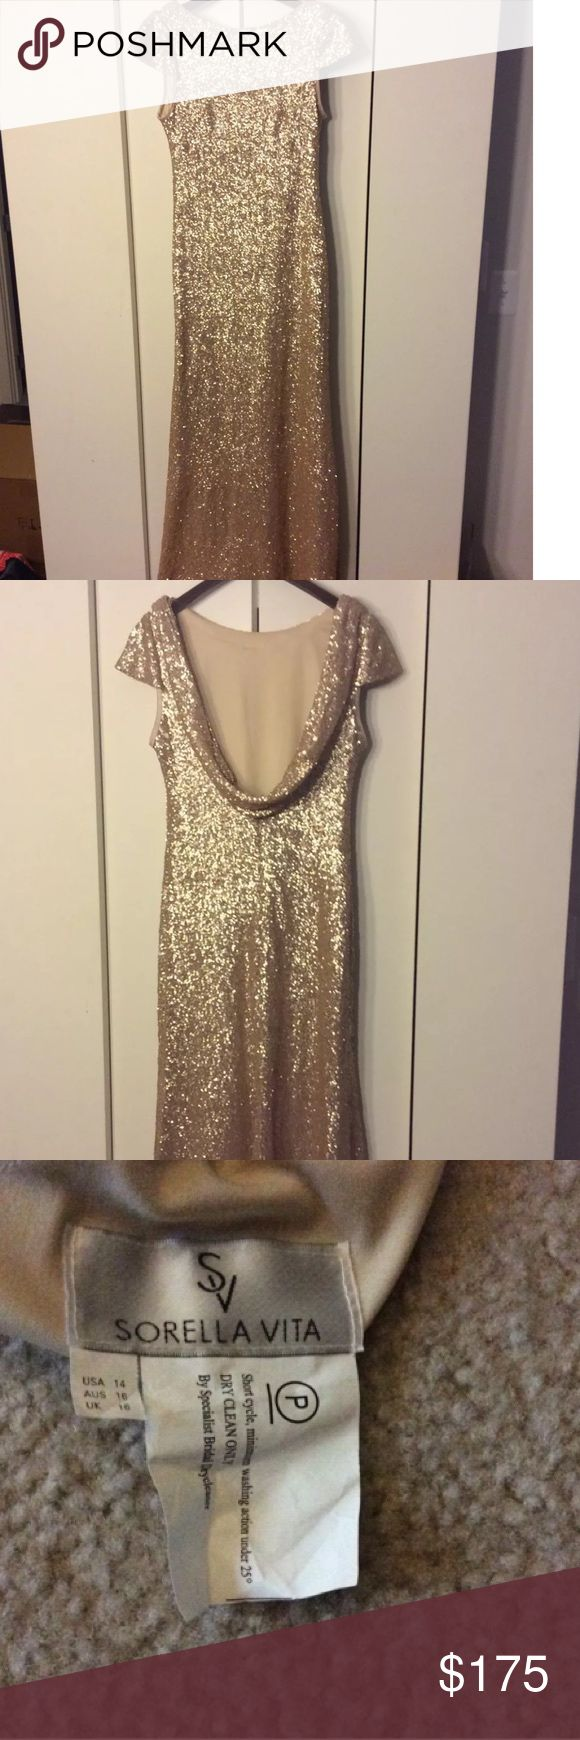 Sorella vita bridesmaid dress. Worn once! Beautiful bridesmaid dress. Sequin gold gown. I am 5 foot 4 inches tall and normally a size 8. This is a size 14 and hemmed 1.5 inch. Worn with 3 inch heel. No other alterations made. sorella vita Dresses Wedding